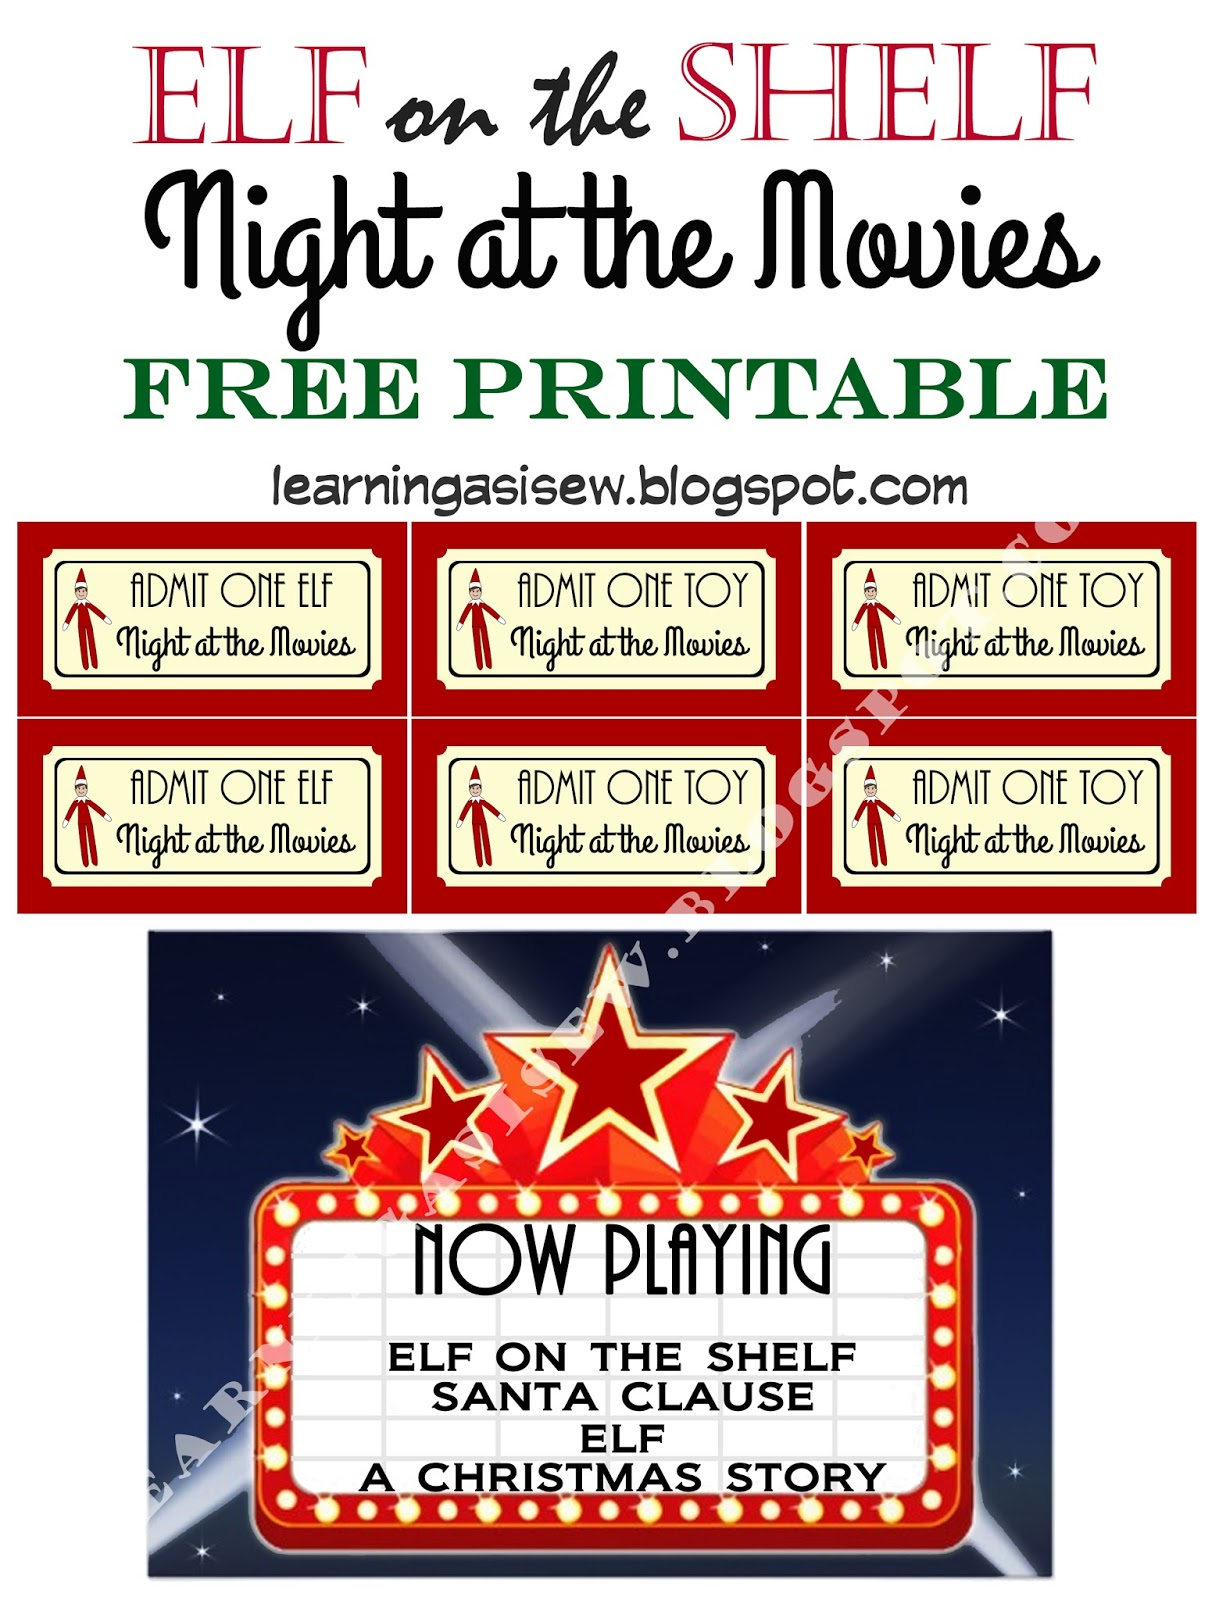 image about Free Printable Movie Tickets titled Discovering As I Sewbake, reduce, and generate: Elf upon the Shelf